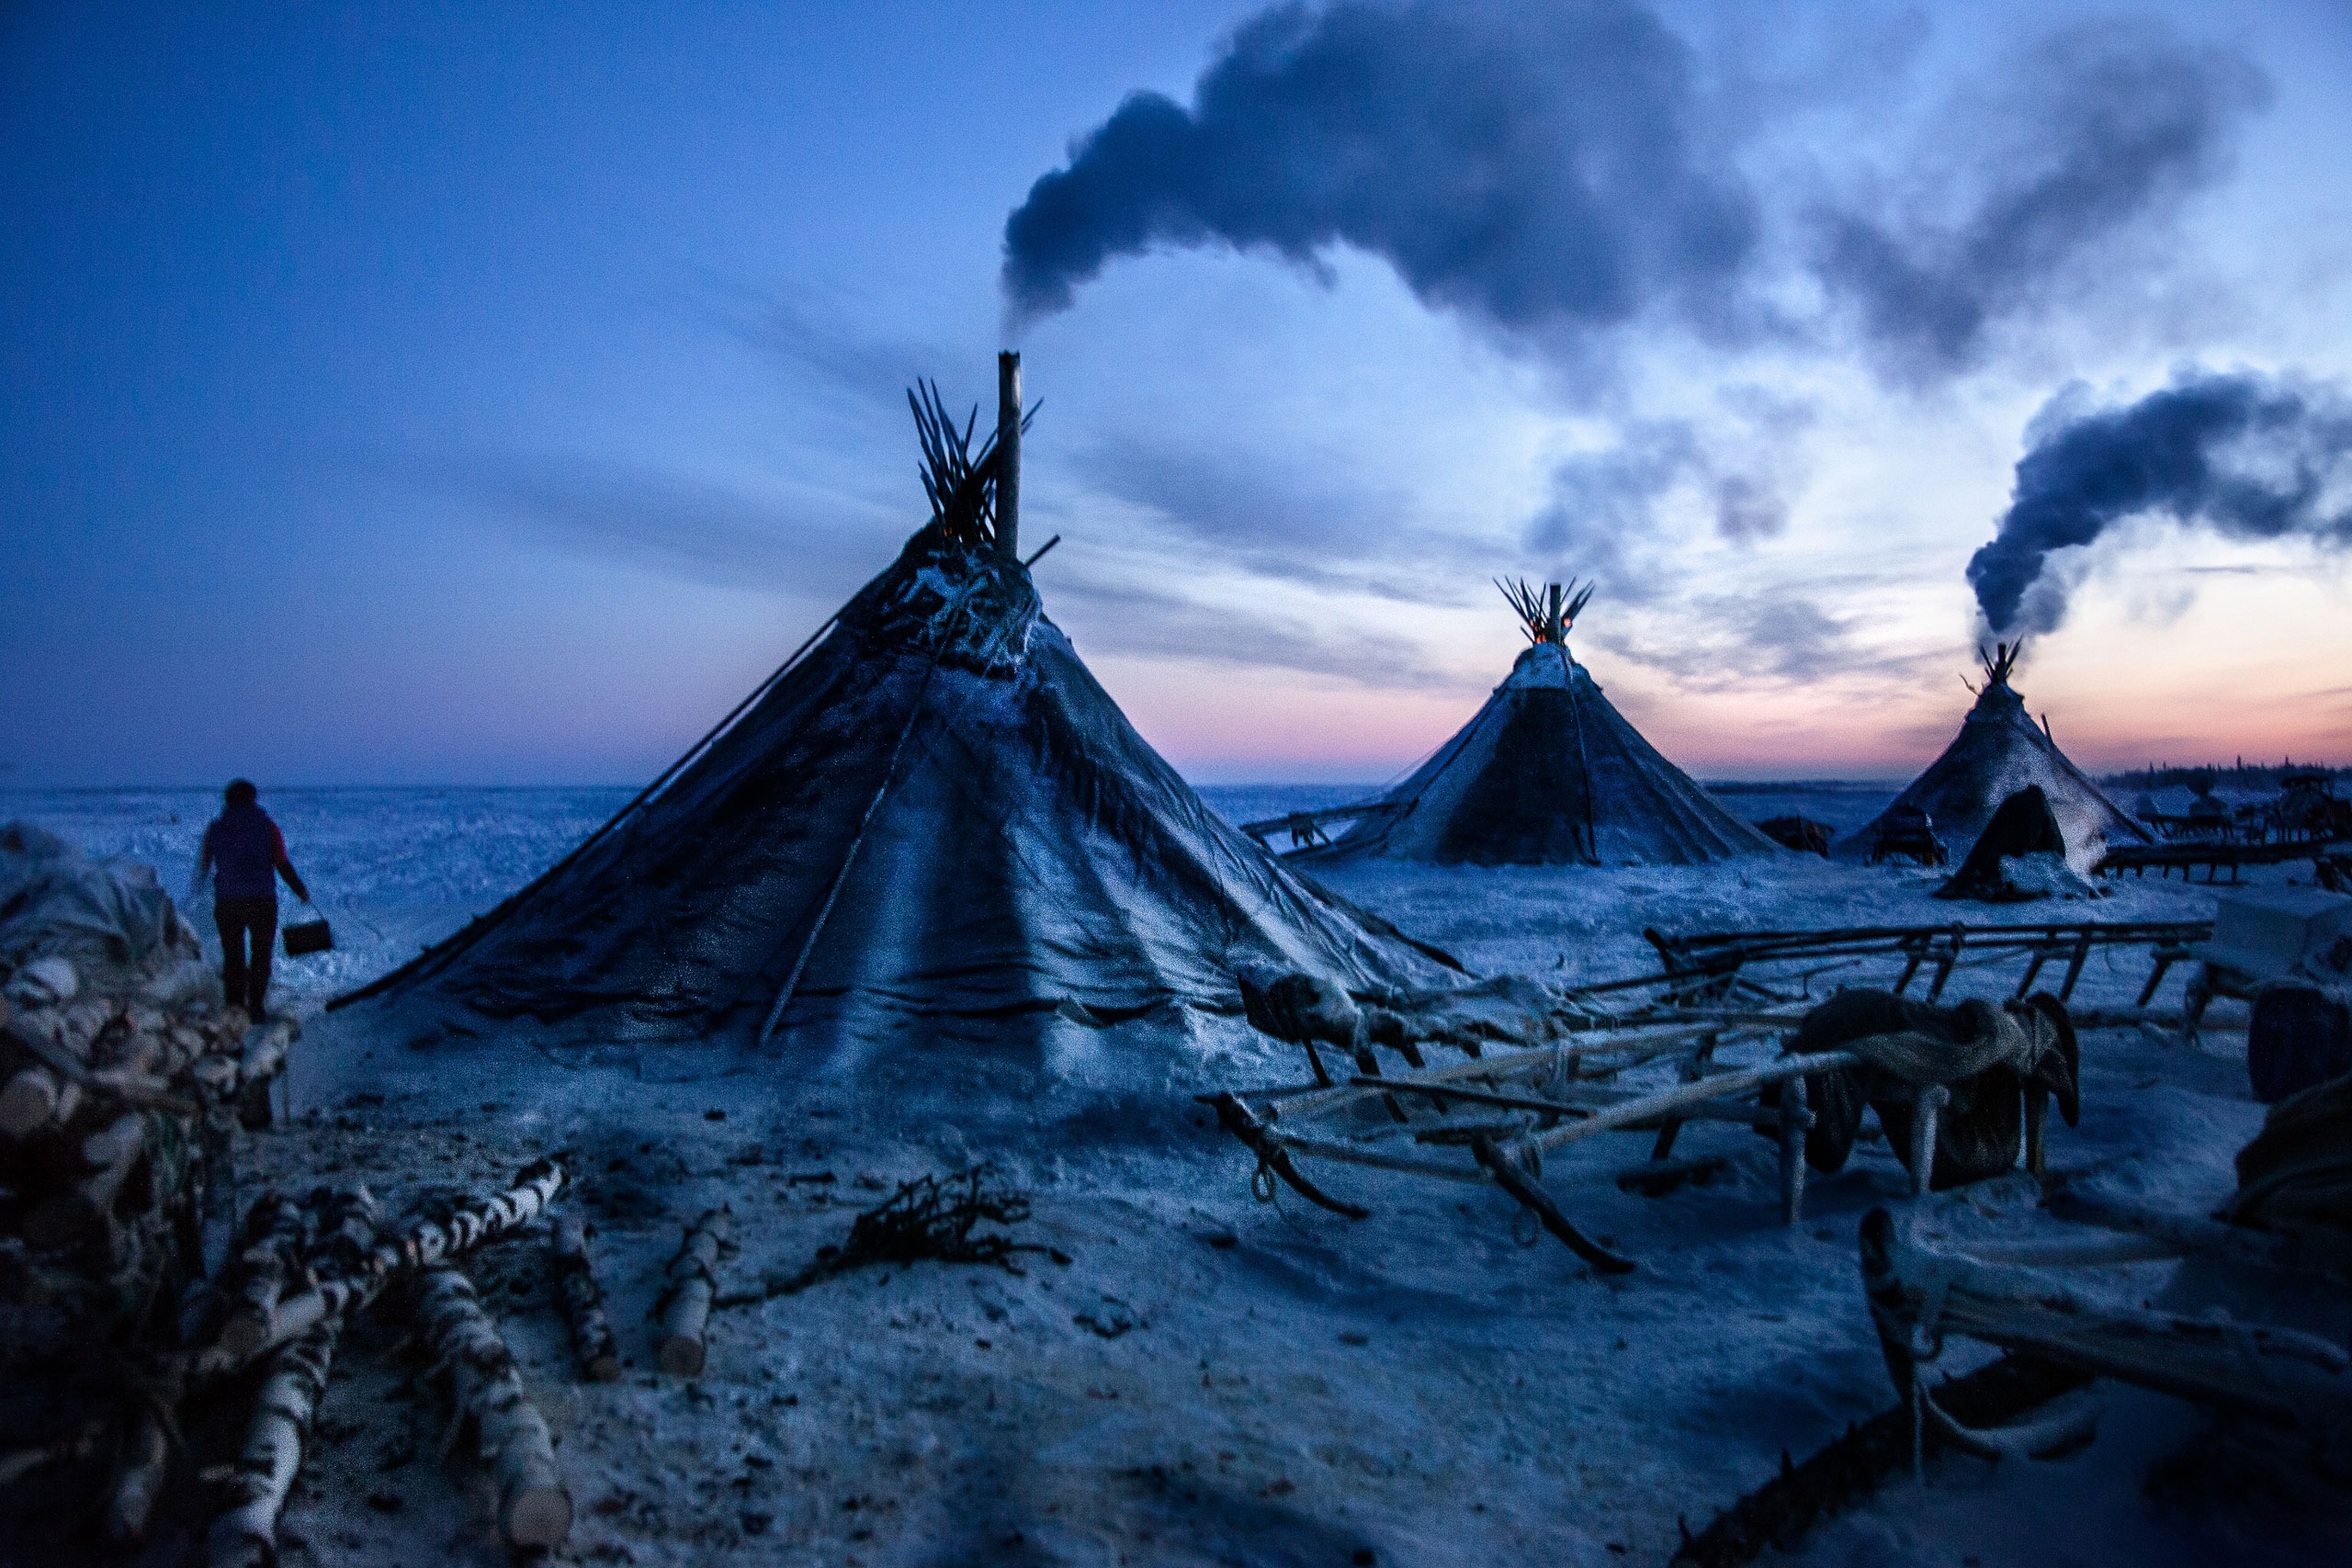 A colony of tents, or  chums , belonging to Nenets herders stand in the Arctic tundra in the Russian Nenets Autonomous Region. The culture of the indigenous people of the Russian Arctic eroded under Soviet collectivization and now their land is endangered due to modern oil and gas exploration, February 2011.